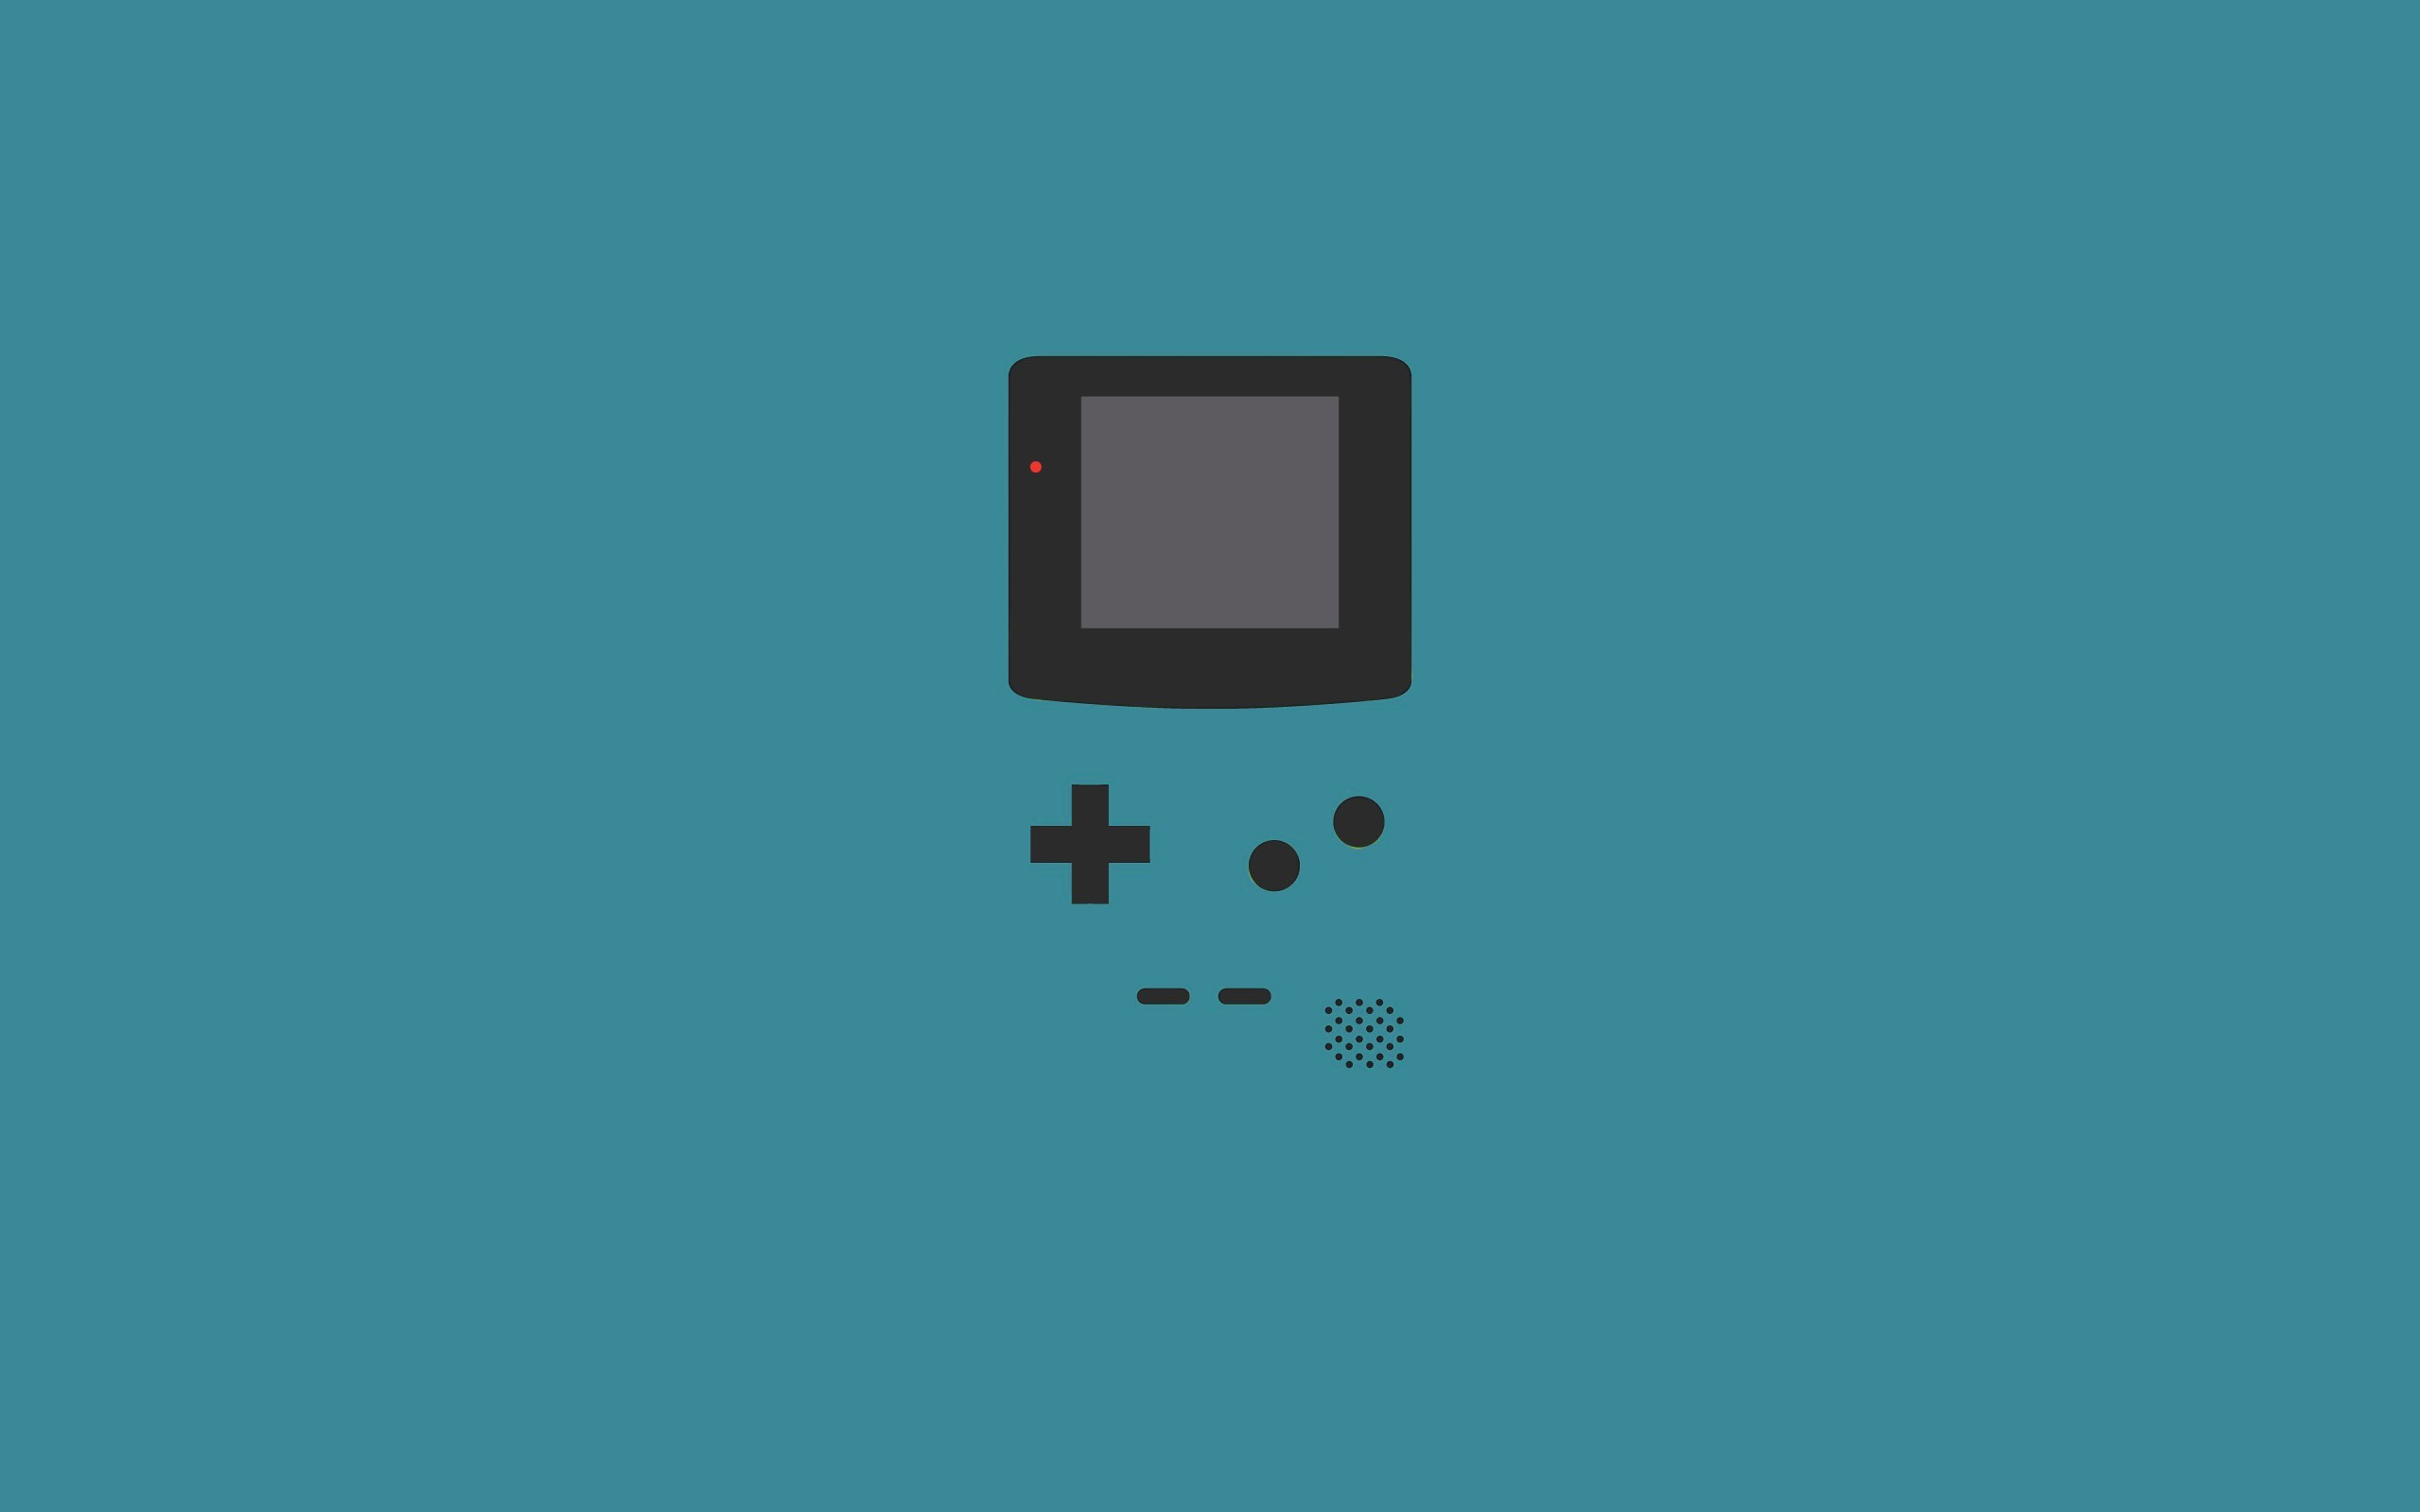 pokemon gameboy wallpaper - photo #17